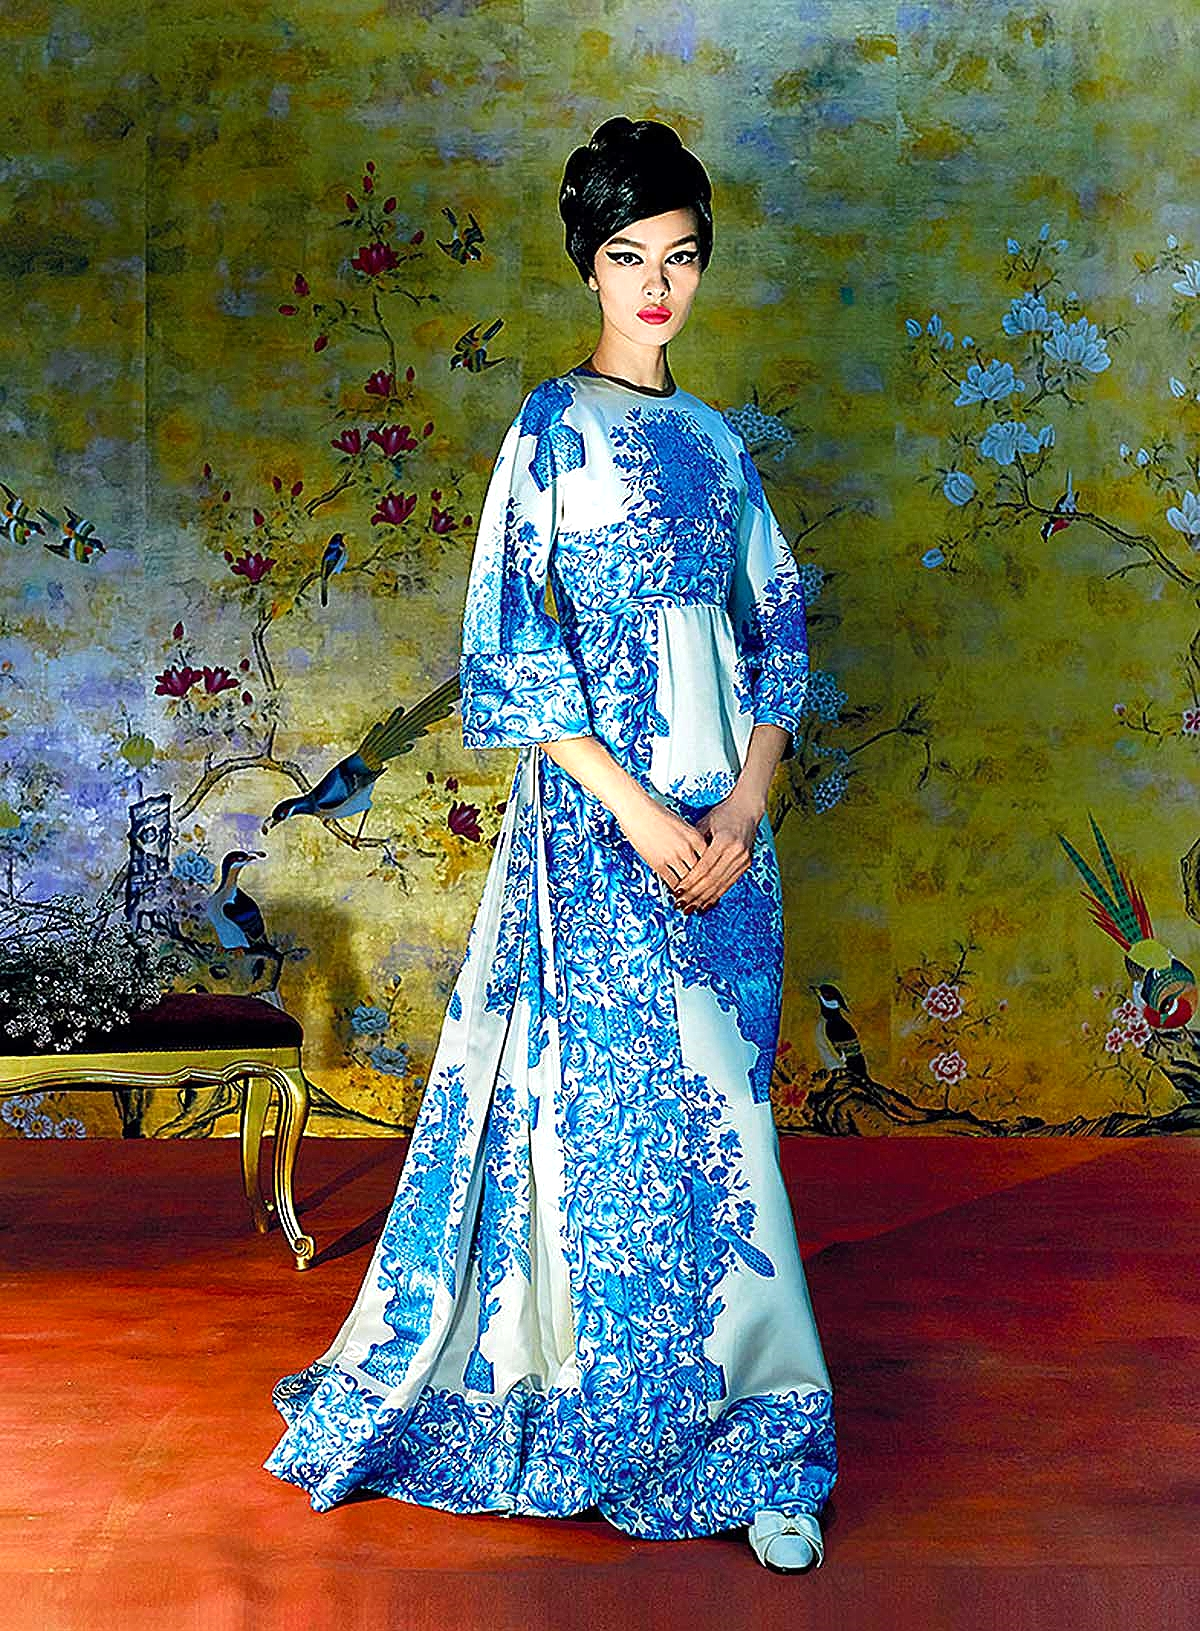 Valentino created this blue-and-white bouquet-printed gown in Autumn 1968.